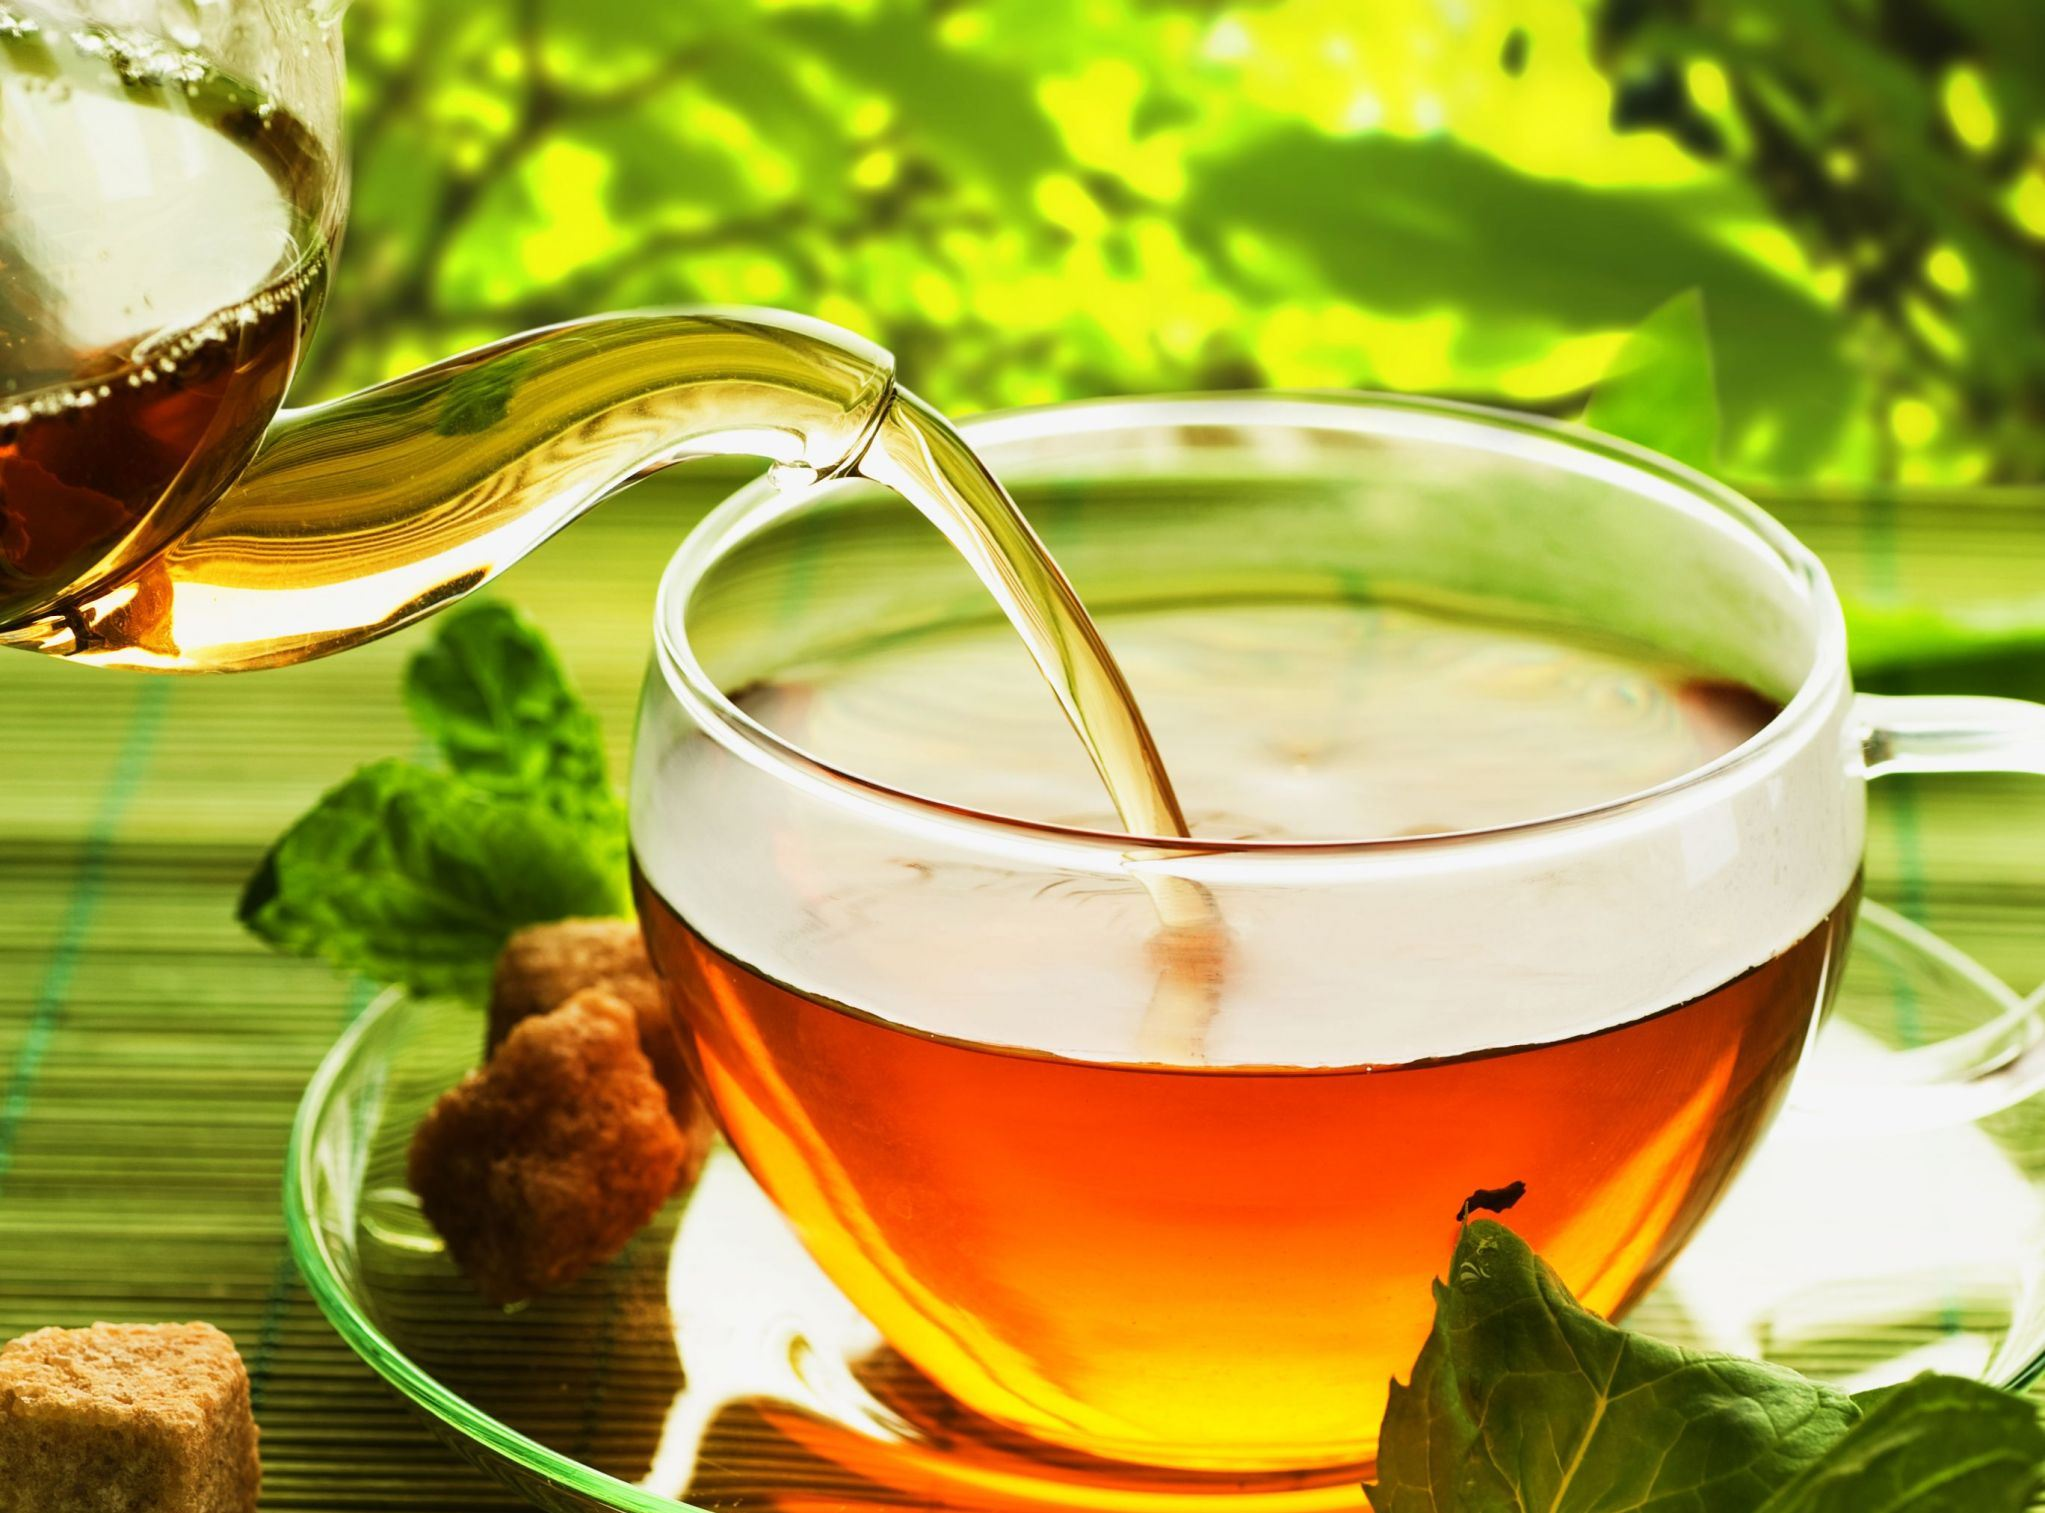 India Commerce Ministry Investigating Tea Sold for BTC